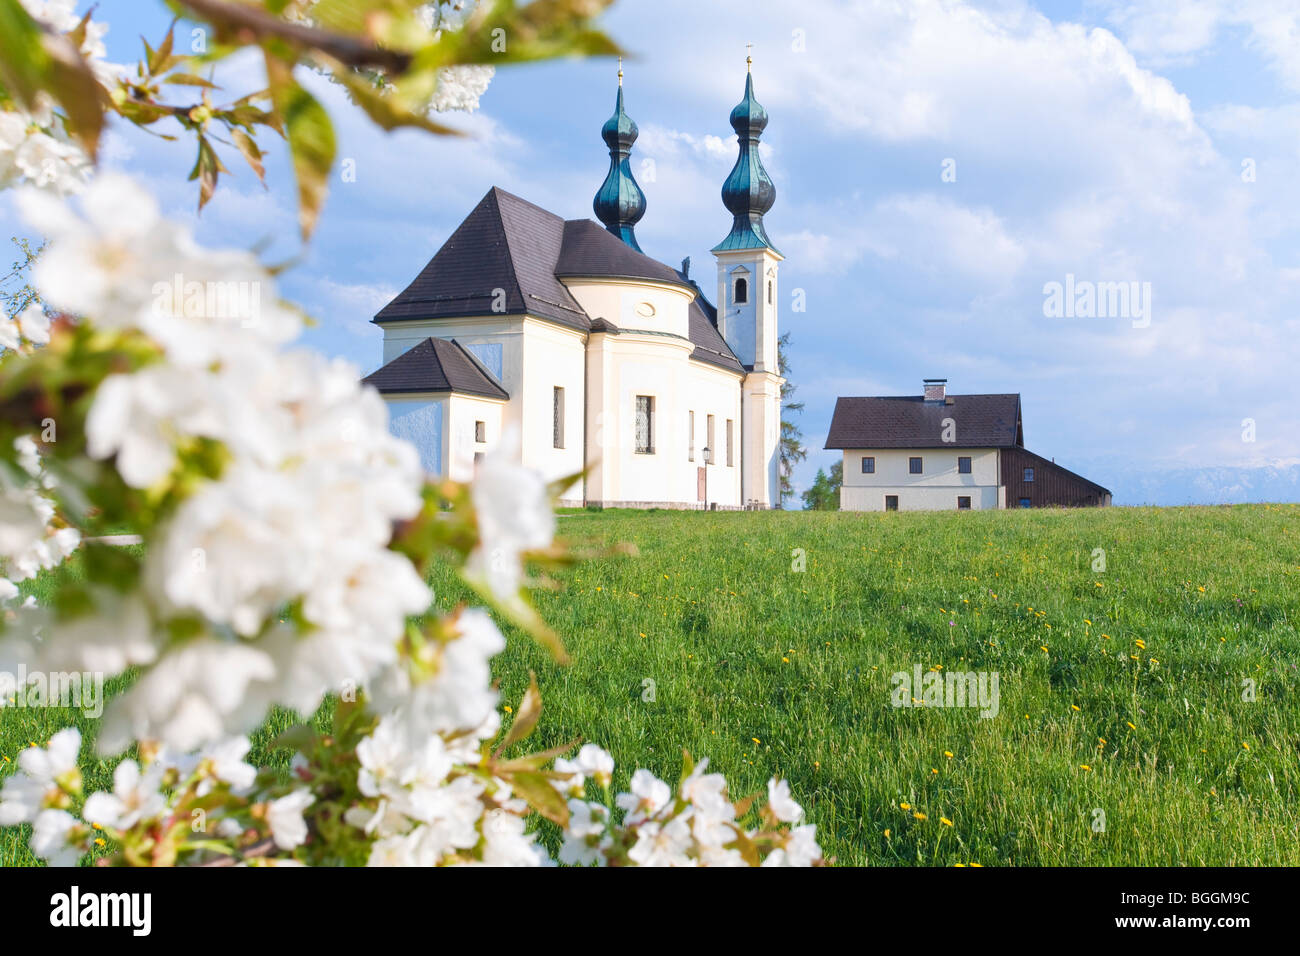 Church of pilgrimage in Oberndorf bei Salzburg, Austria, low angle view - Stock Image